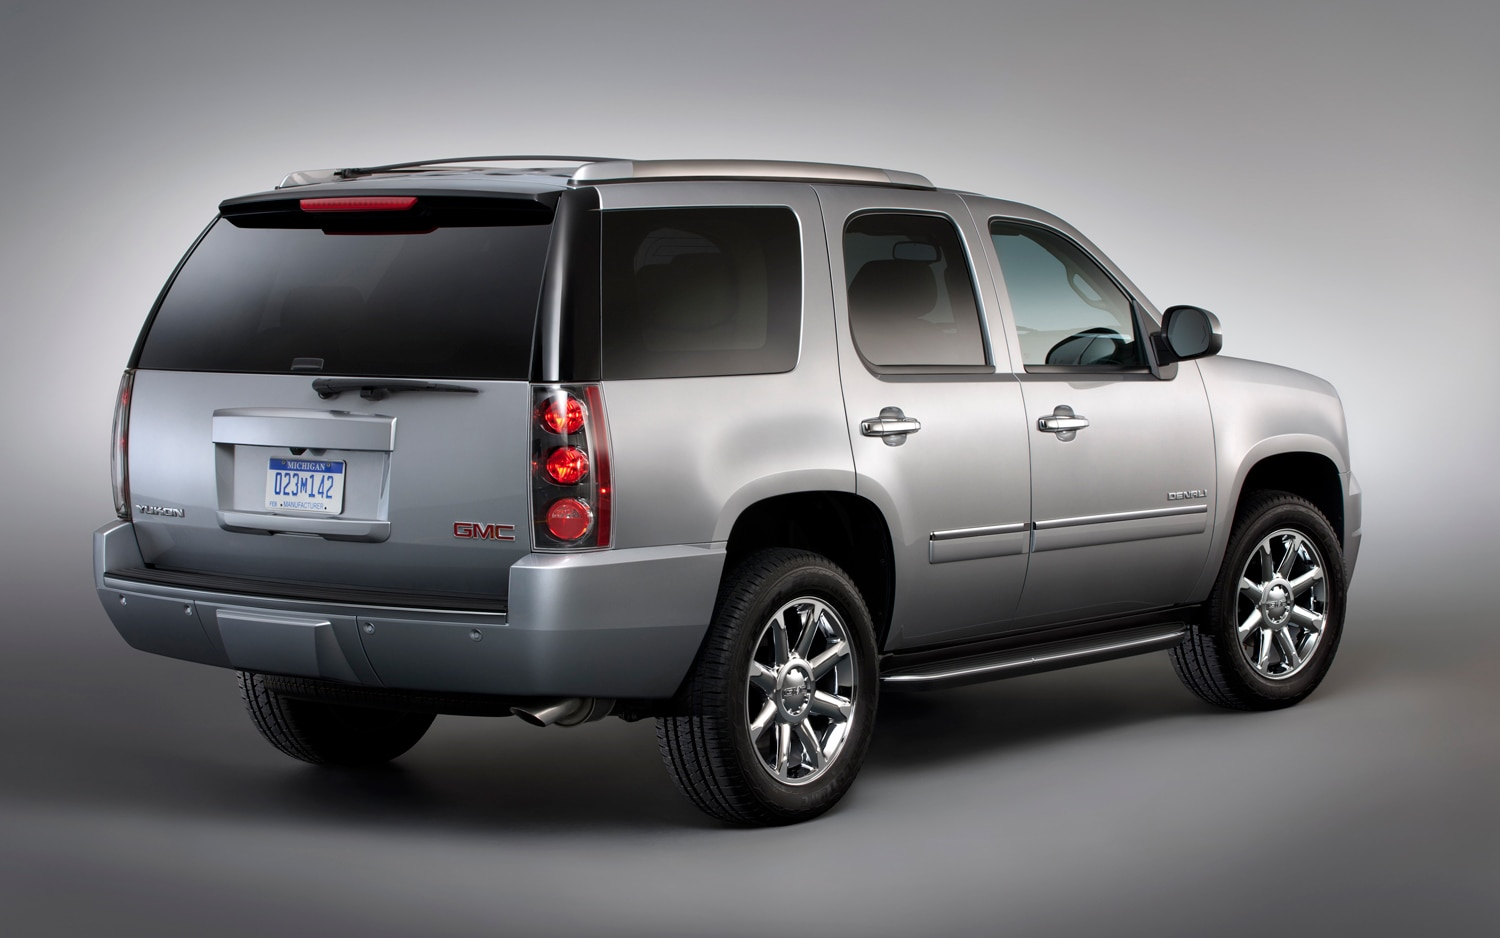 2013 GMC Yukon Denali Rear